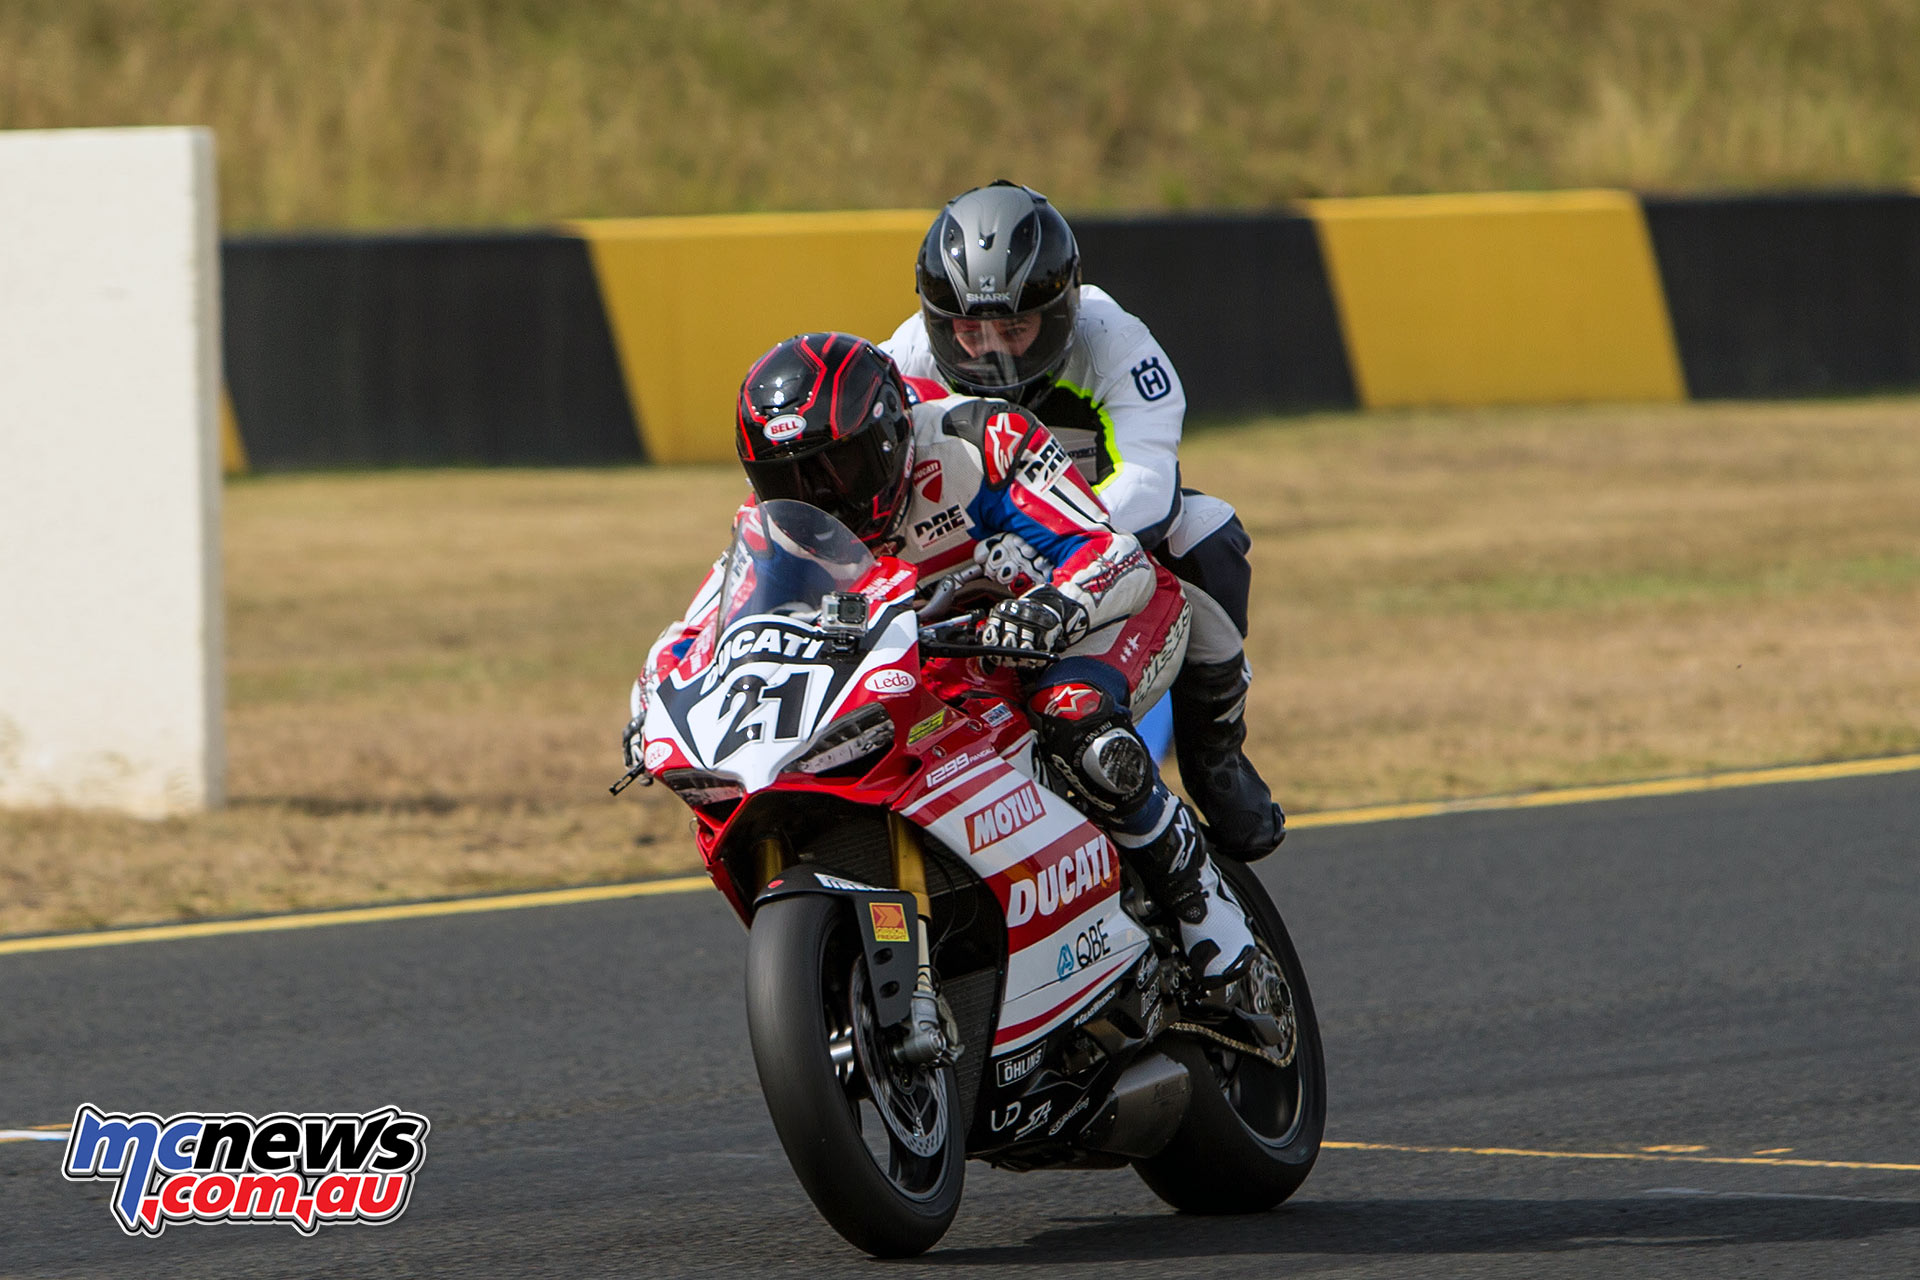 Win a pillion ride with legends Steve Martin or Troy Bayliss at the ASBK Wakefield round.